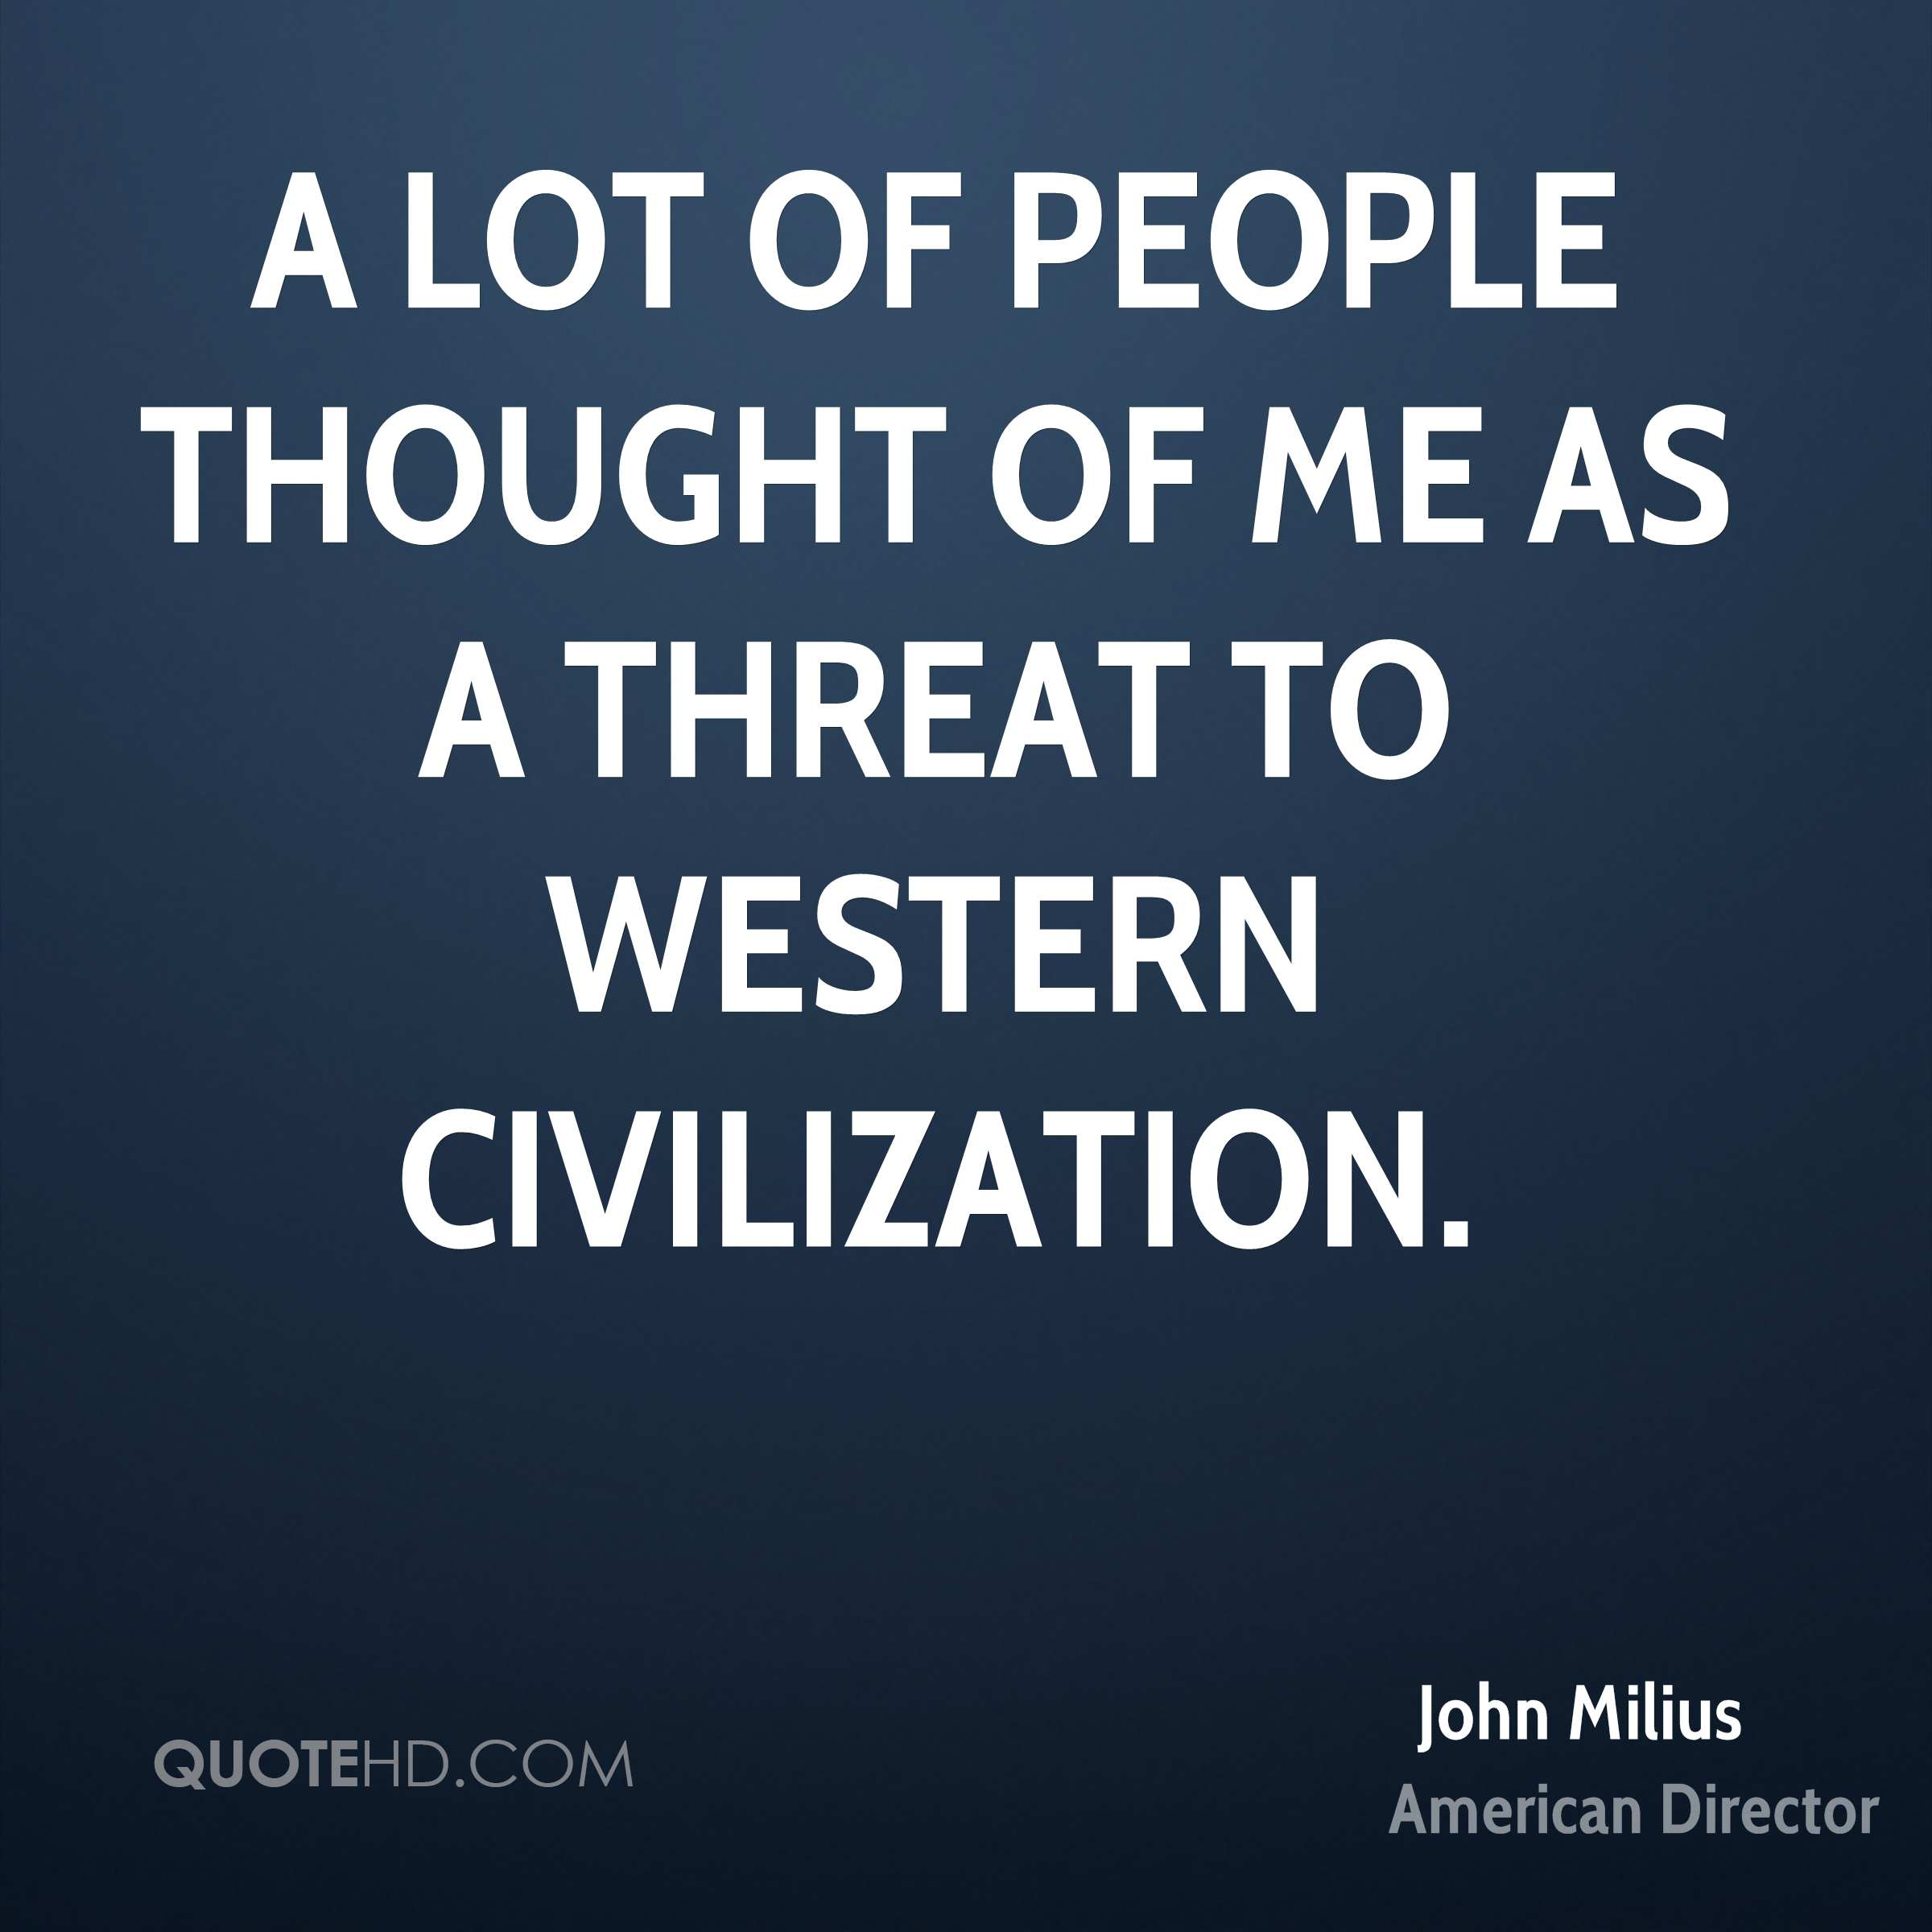 A lot of people thought of me as a threat to Western civilization.